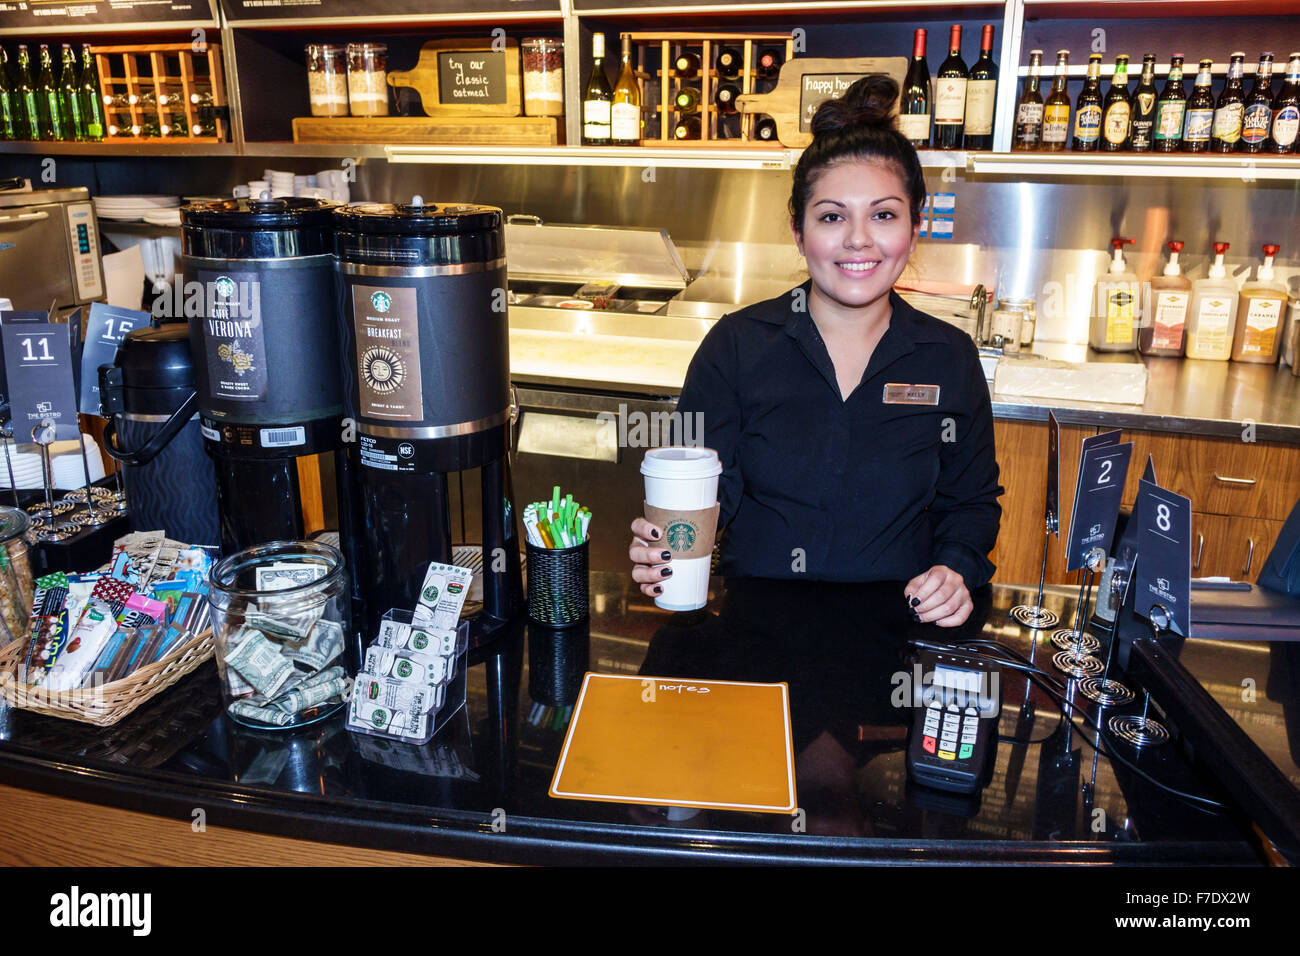 Courtyard by Marriott Stuart Florida hall de l'hôtel motel café restaurant Café Starbucks barista Photo Stock